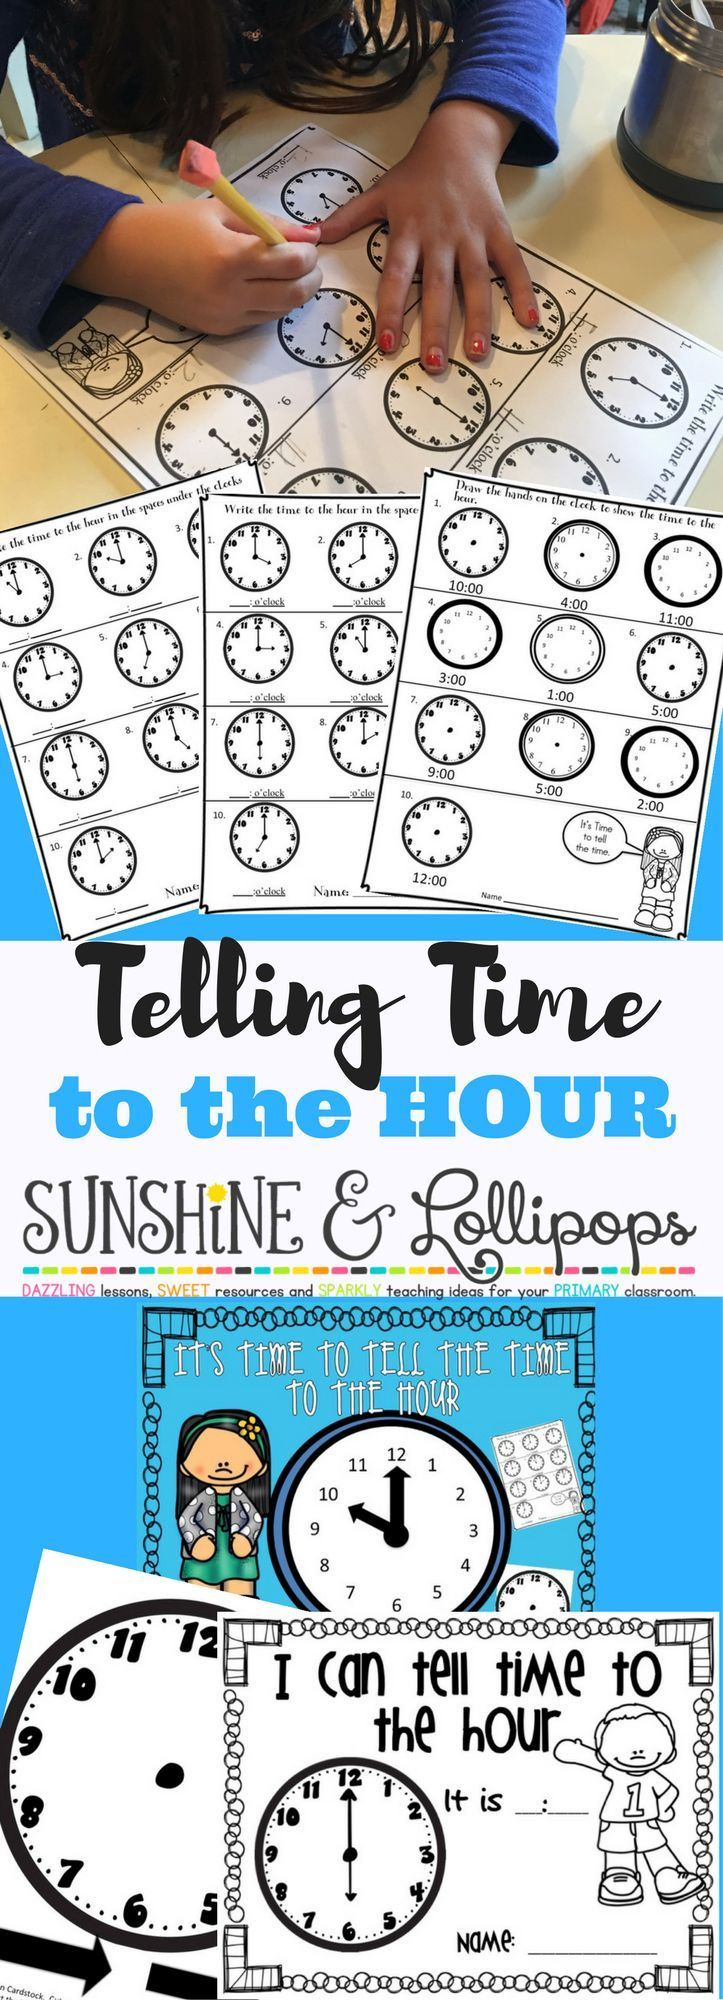 Telling Time to the Hour Power Point Introduction and PDF Worksheets ...